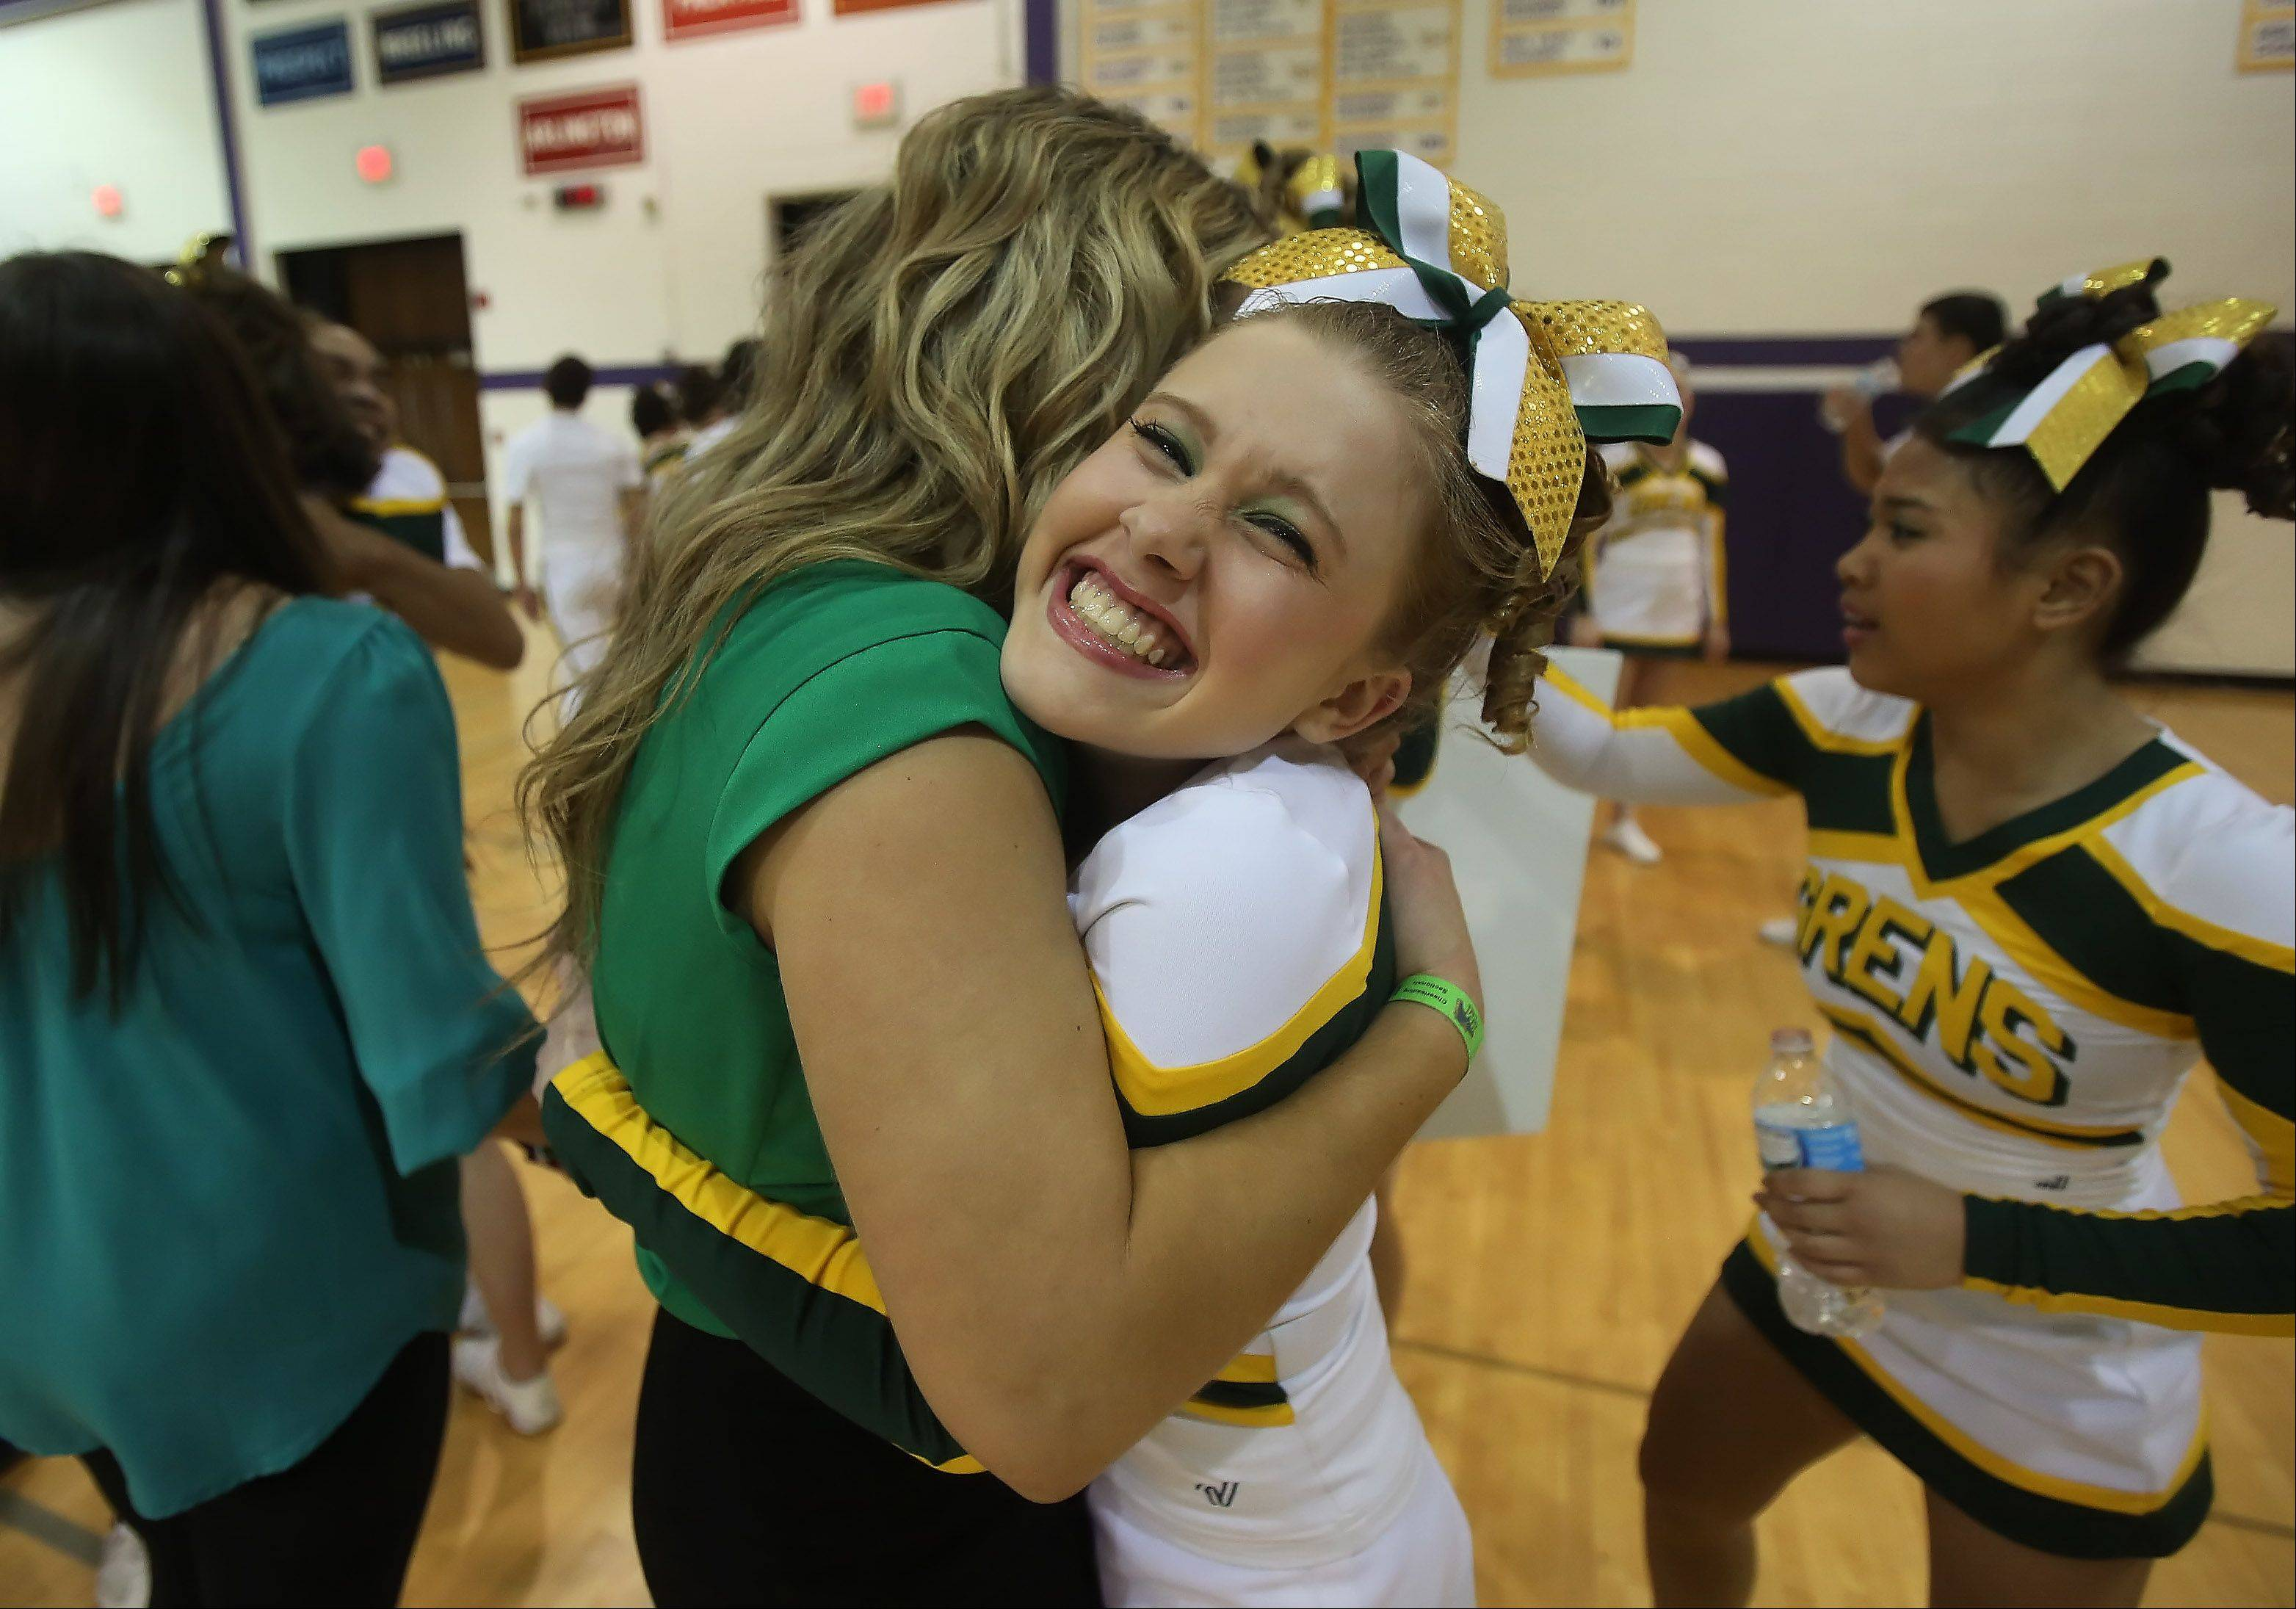 Elk Grove High School cheerleader Danielle Haffey hugs her coach Danielle Damato after the team competed Sunday in the Coed Team category during the IHSA Cheerleading Sectional at Rolling Meadows High School.